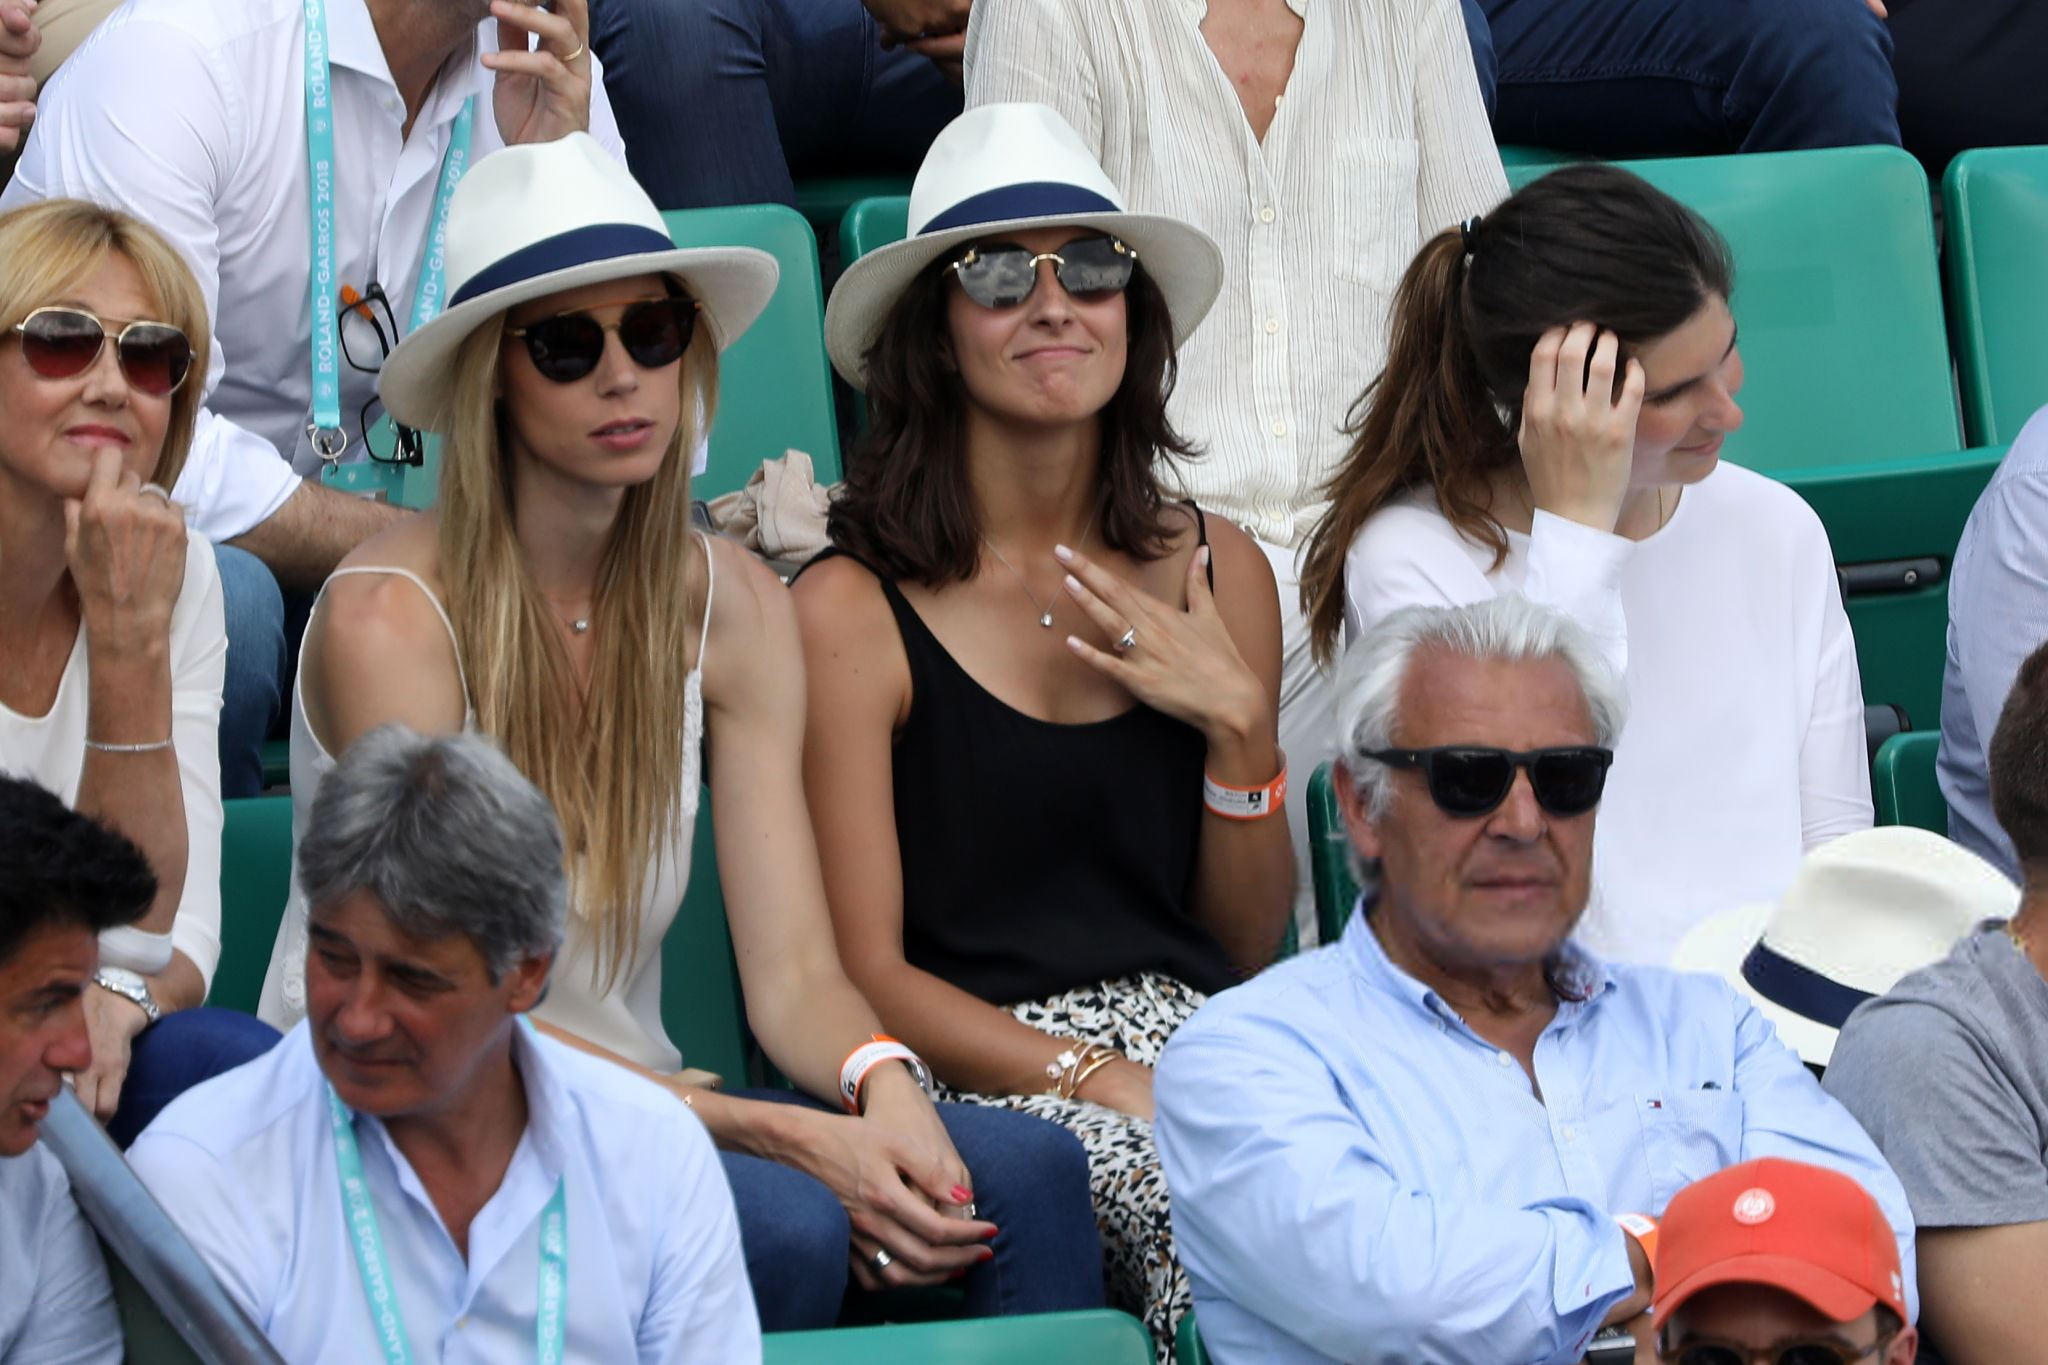 Rafael Nadal Mother Sister And Girlfriend Fourth Round 2018 Roland Garros Photo Rafael Nadal Fans